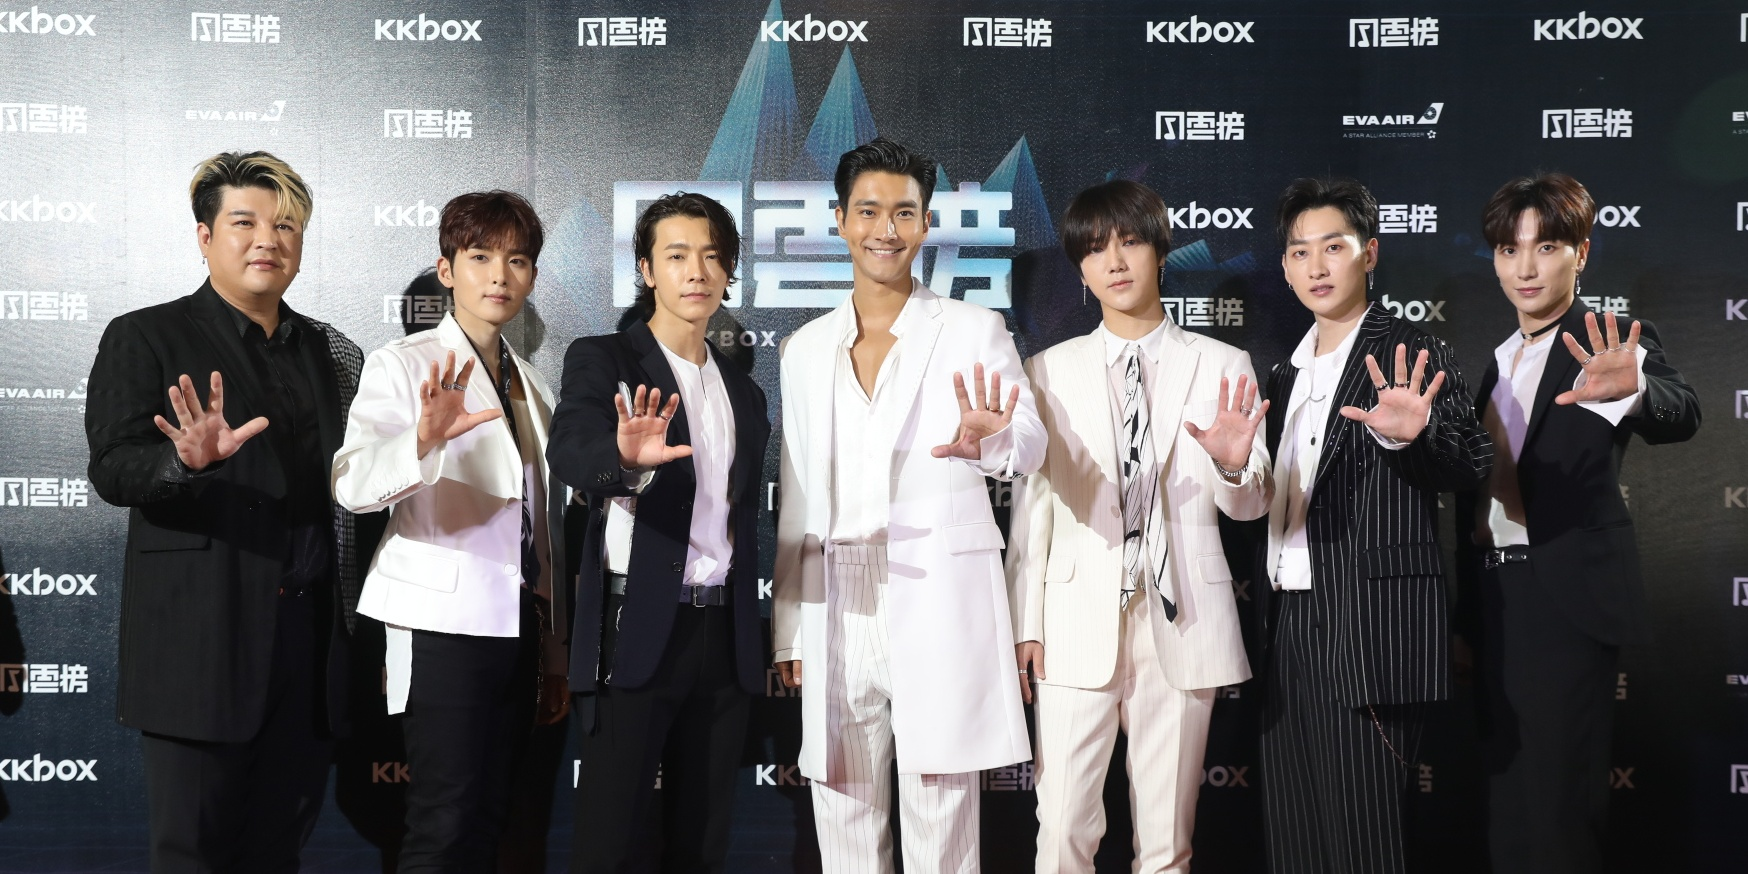 Highlights from the 2019 KKBOX Music Awards